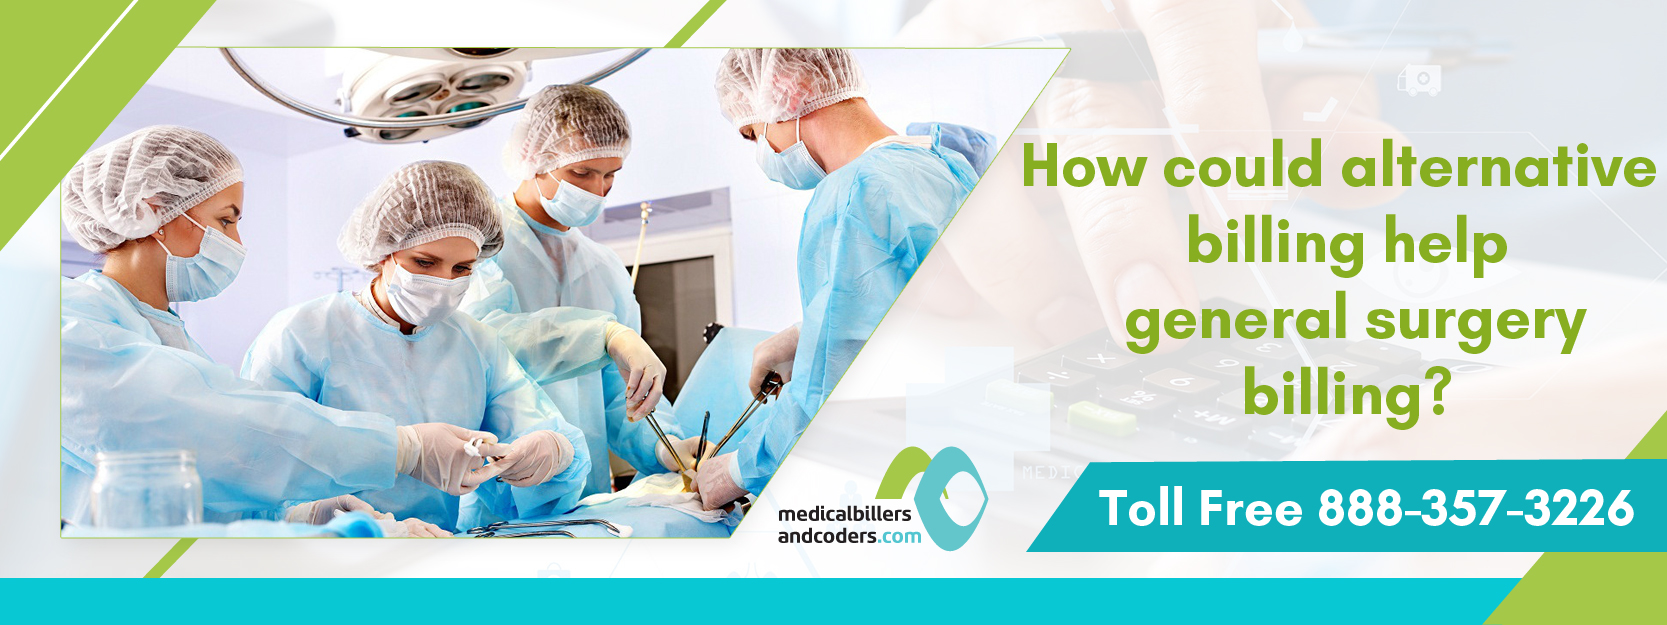 How-could-alternative-billing-help-general-surgery-billing